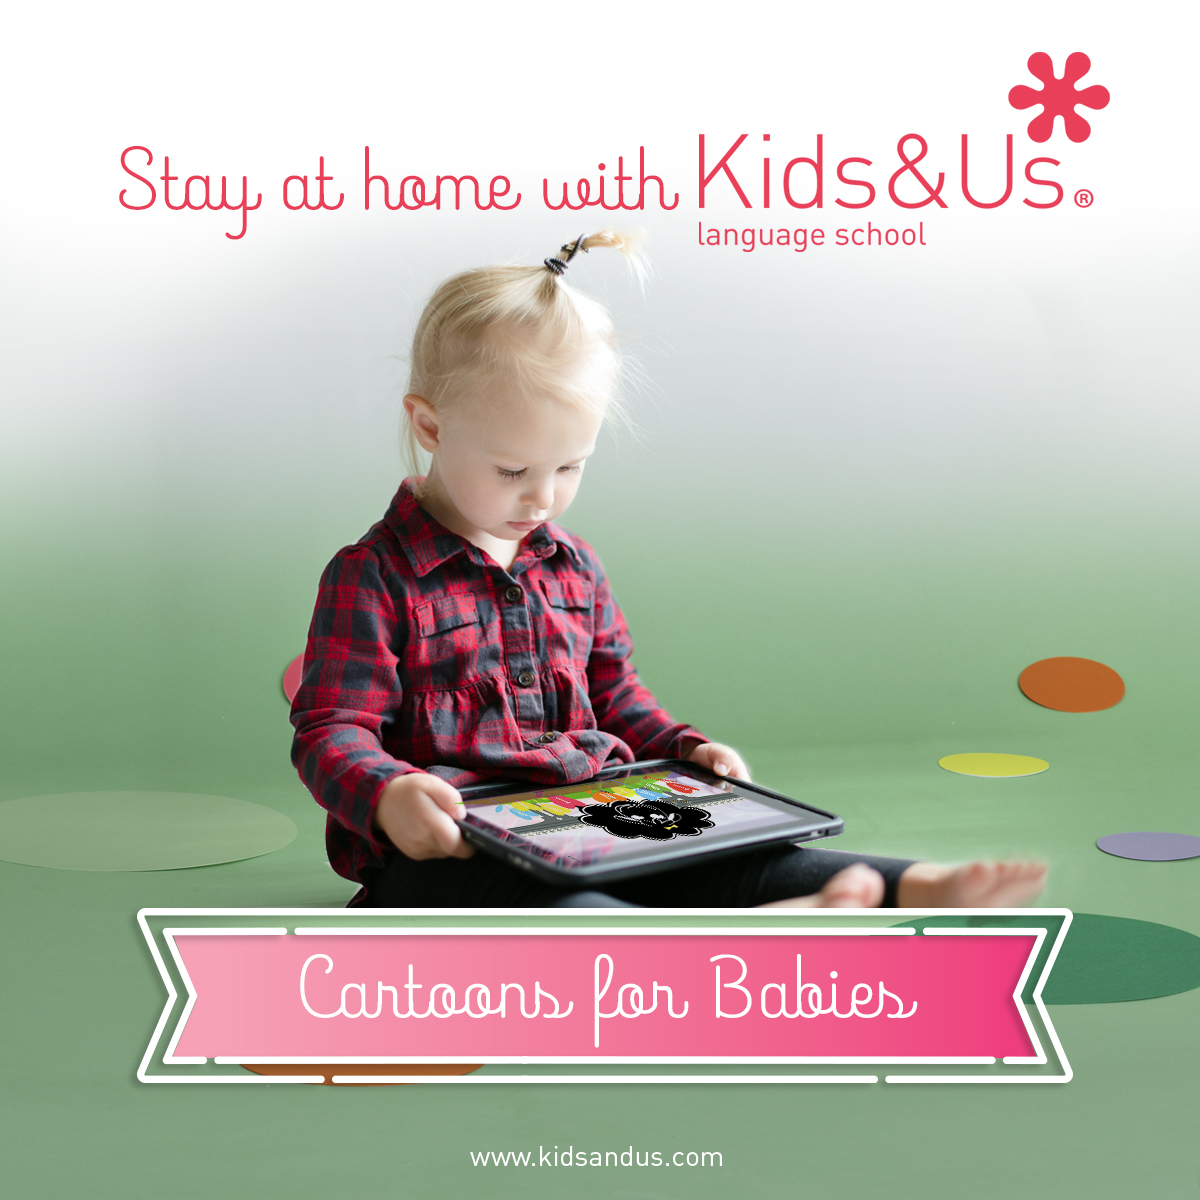 #STAYATHOME WITH KIDS&US FOR BABIES!